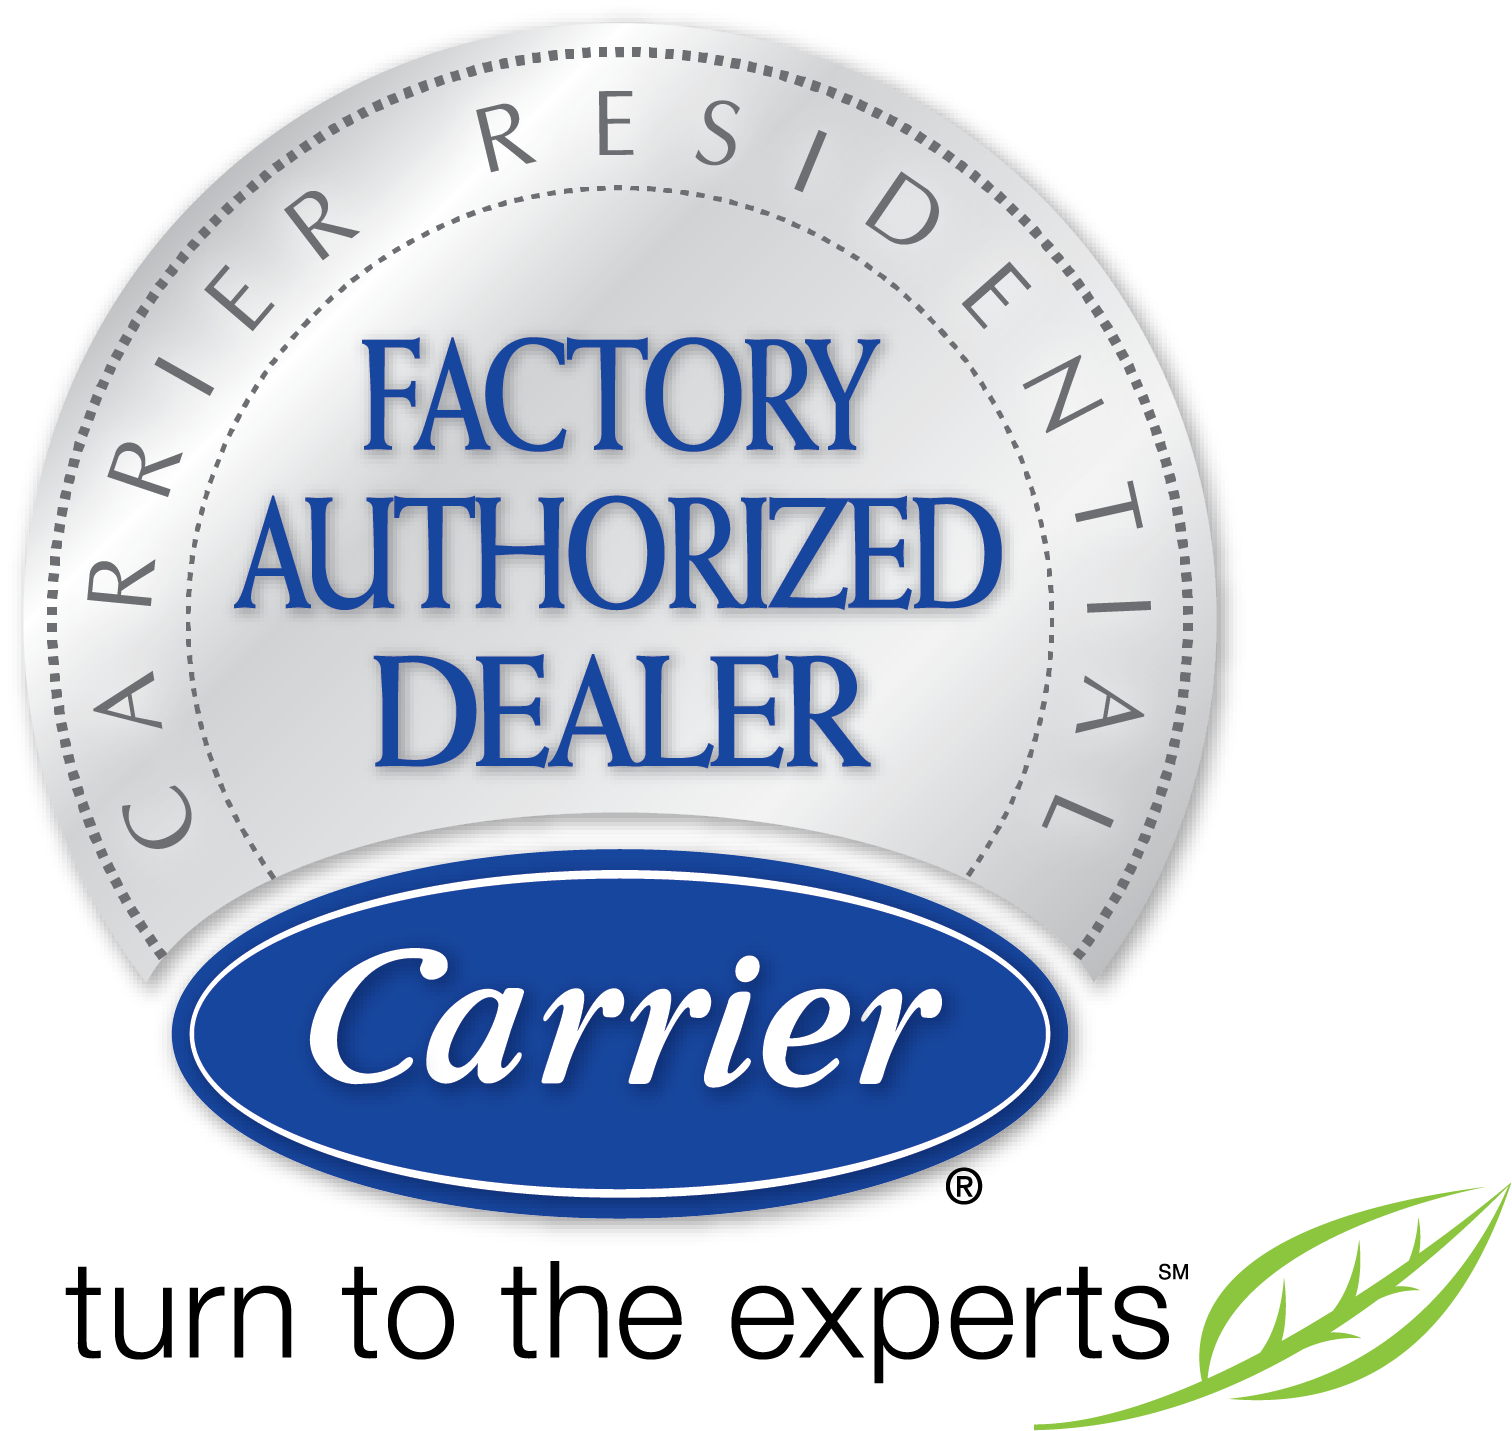 carrier factory authorized dealer furnace montevideo